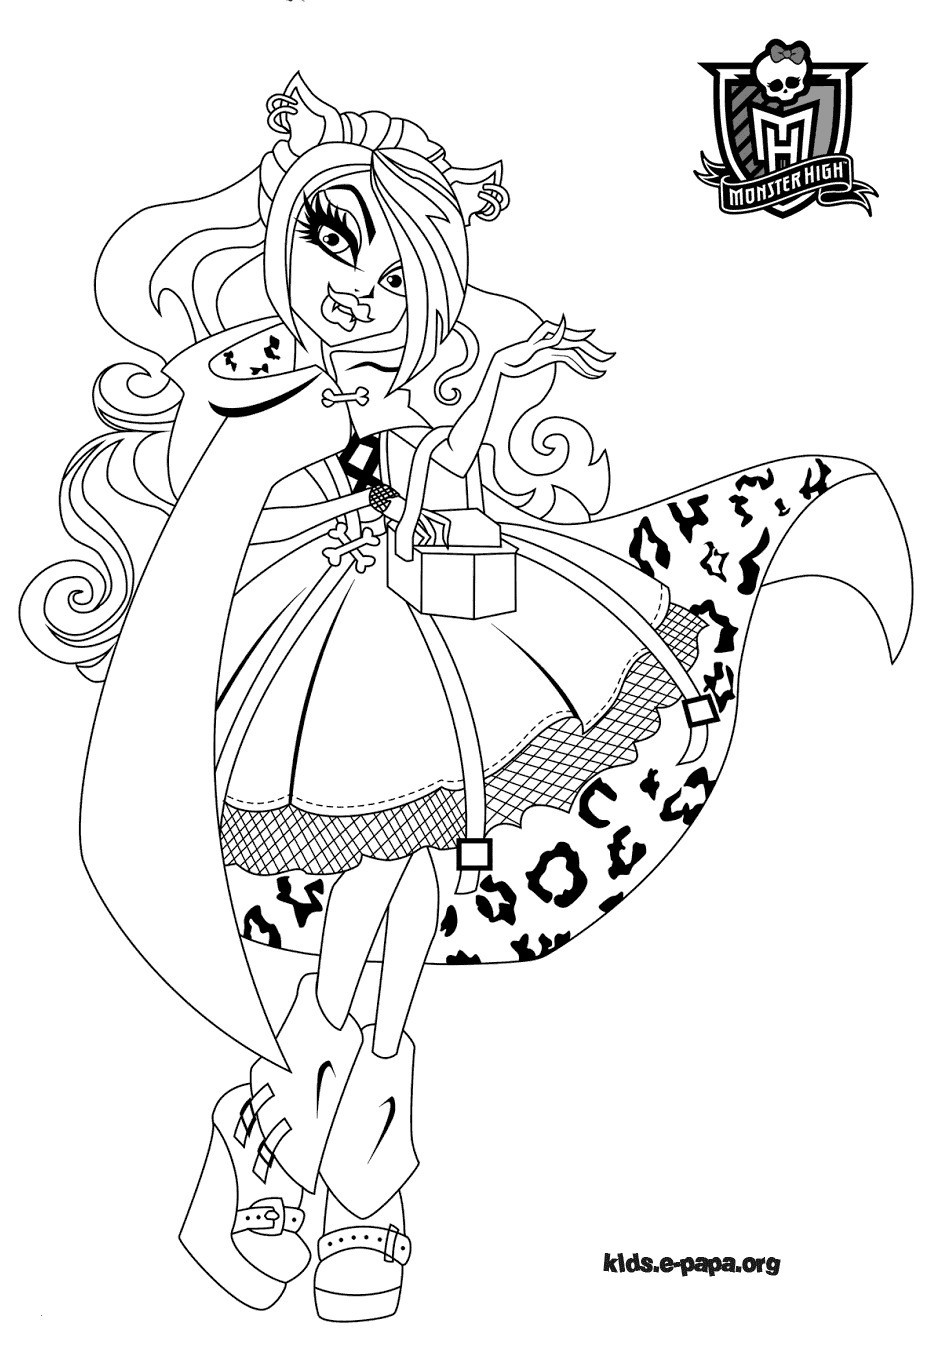 Monster High Malvorlage Inspirierend Monster High Coloring Pages Wydowna Spider Google Search Einzigartig Sammlung